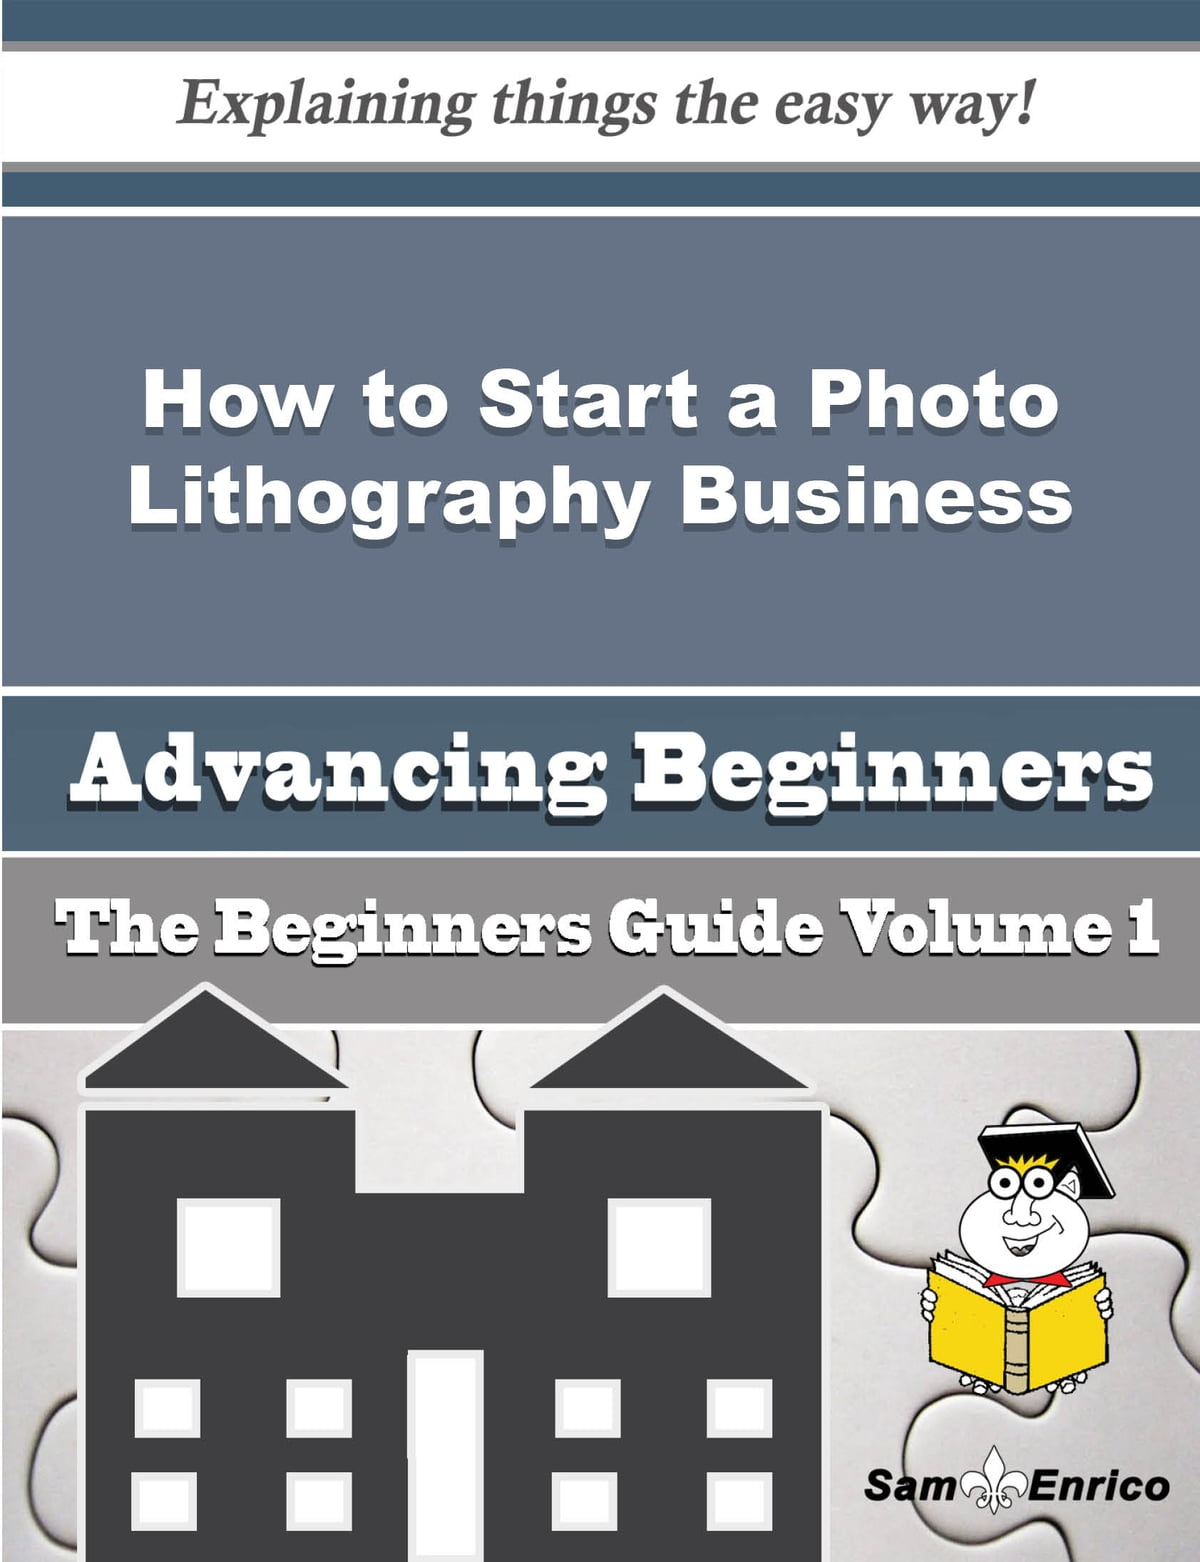 How To Start A Photo Lithography Business Beginners Guide Ebook By Photolithography Janene Stephenson 9781506069760 Rakuten Kobo